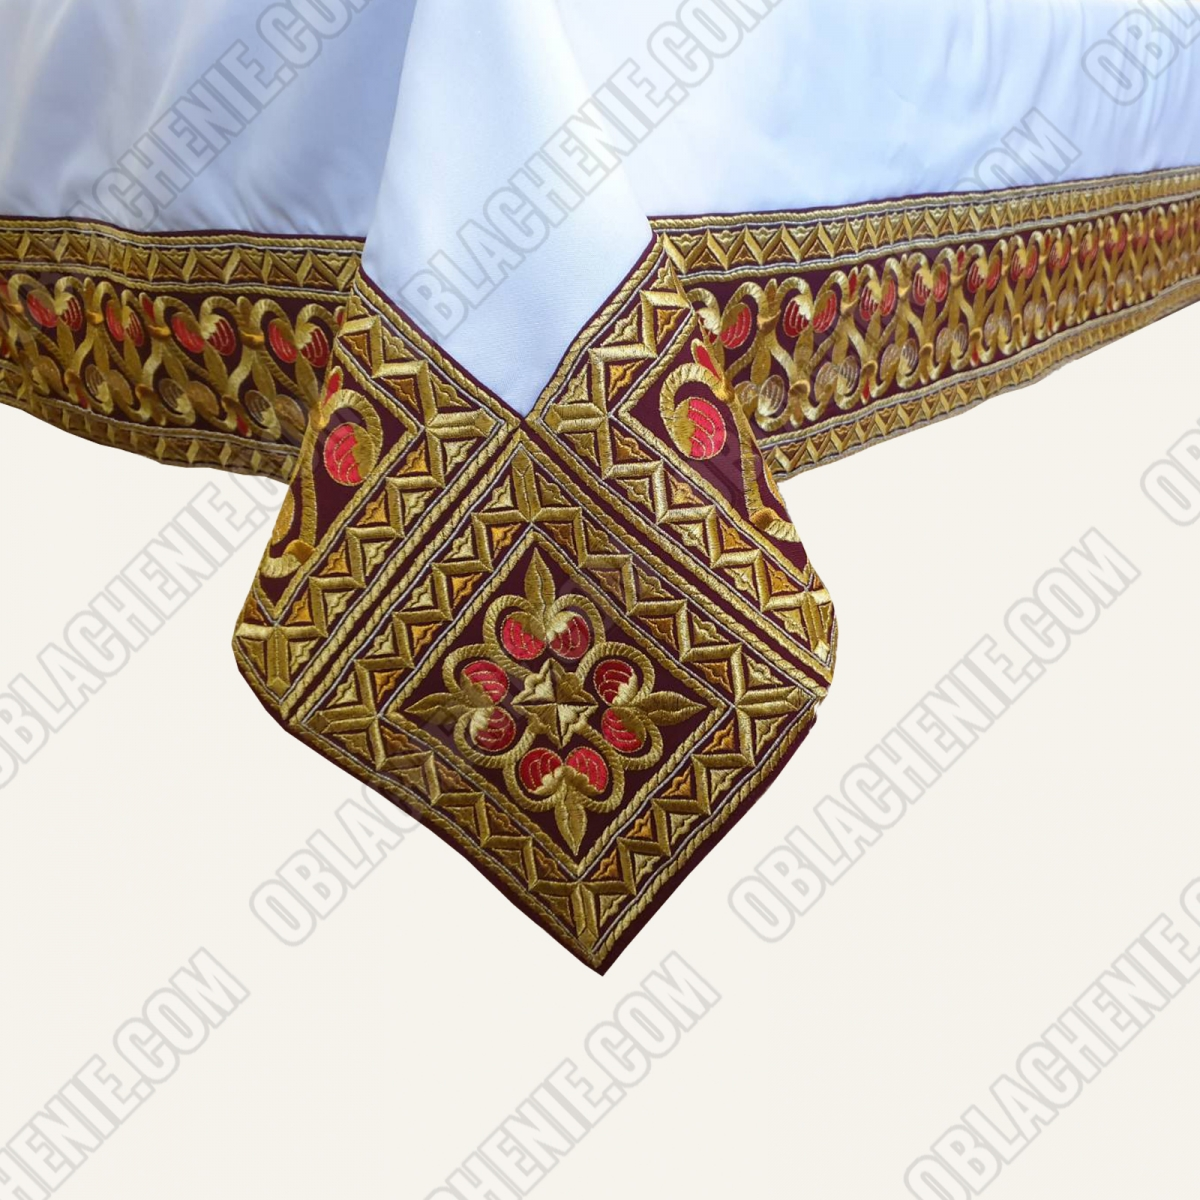 HOLY TABLE VESTMENTS 11660